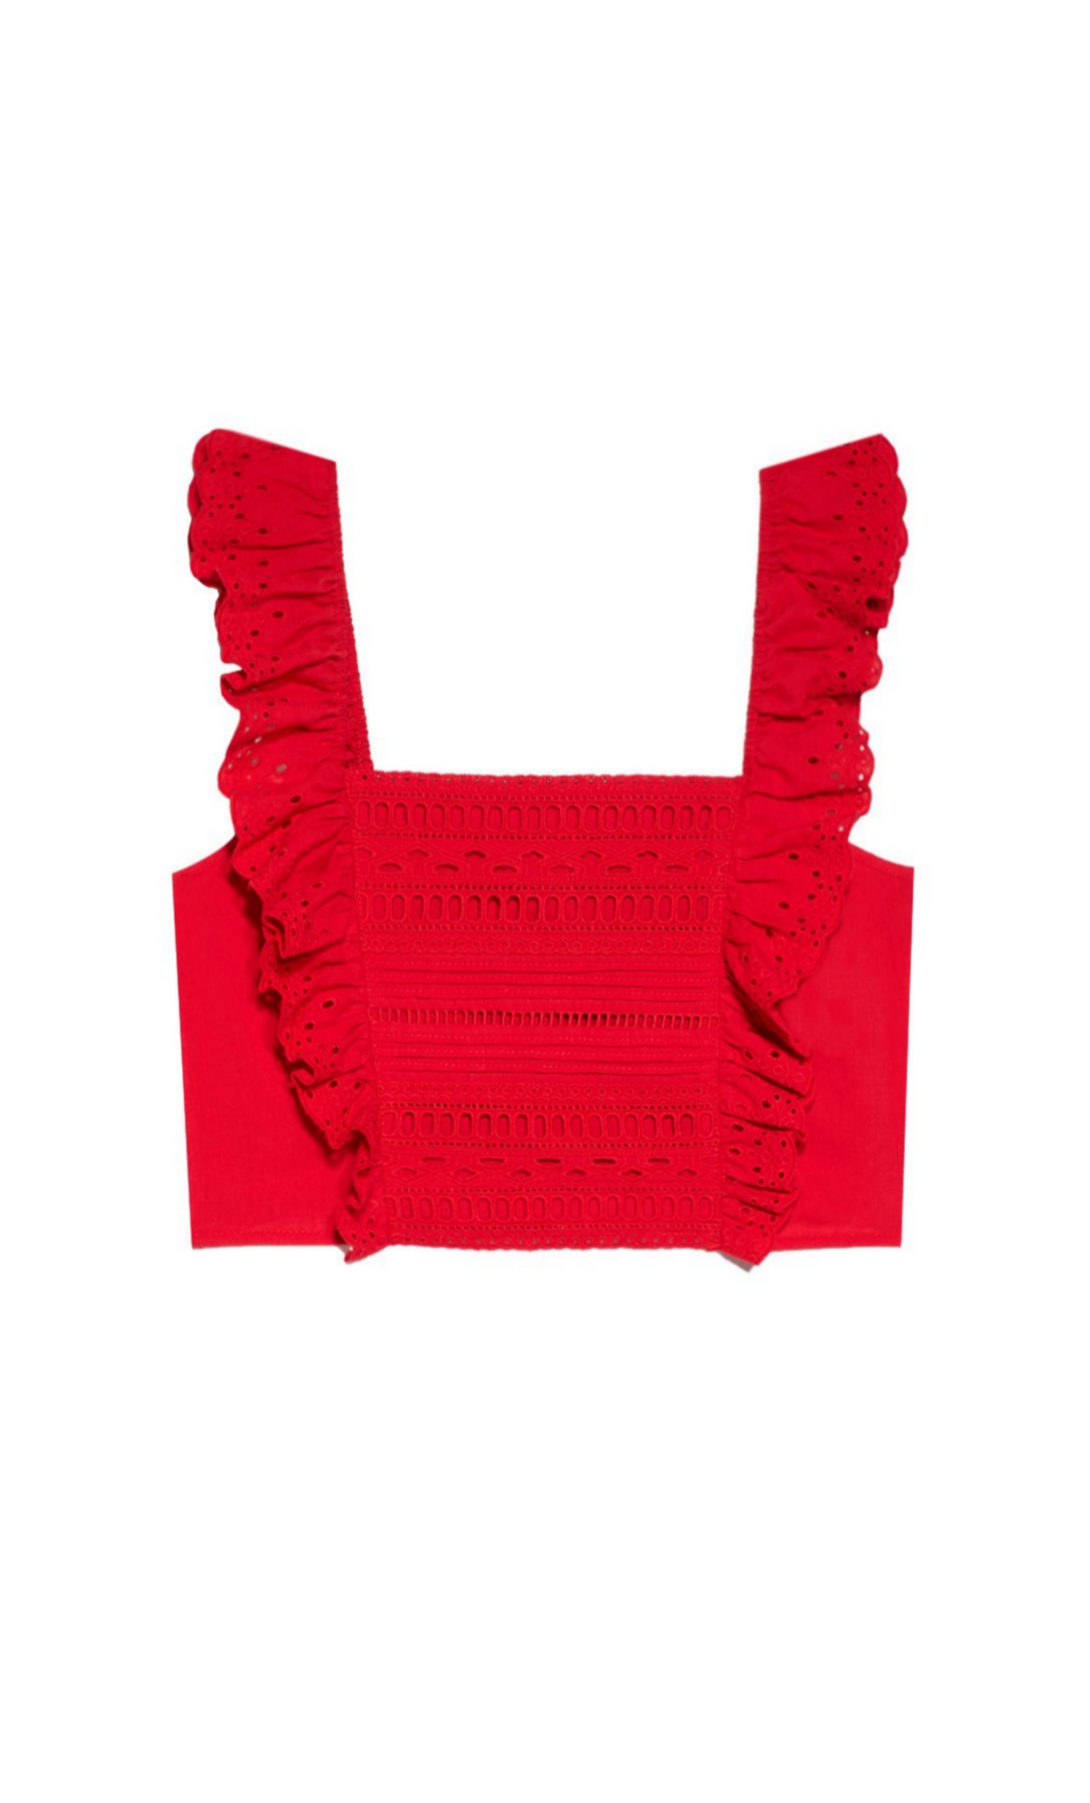 Cropped top con bordados suizos de Stradivarius